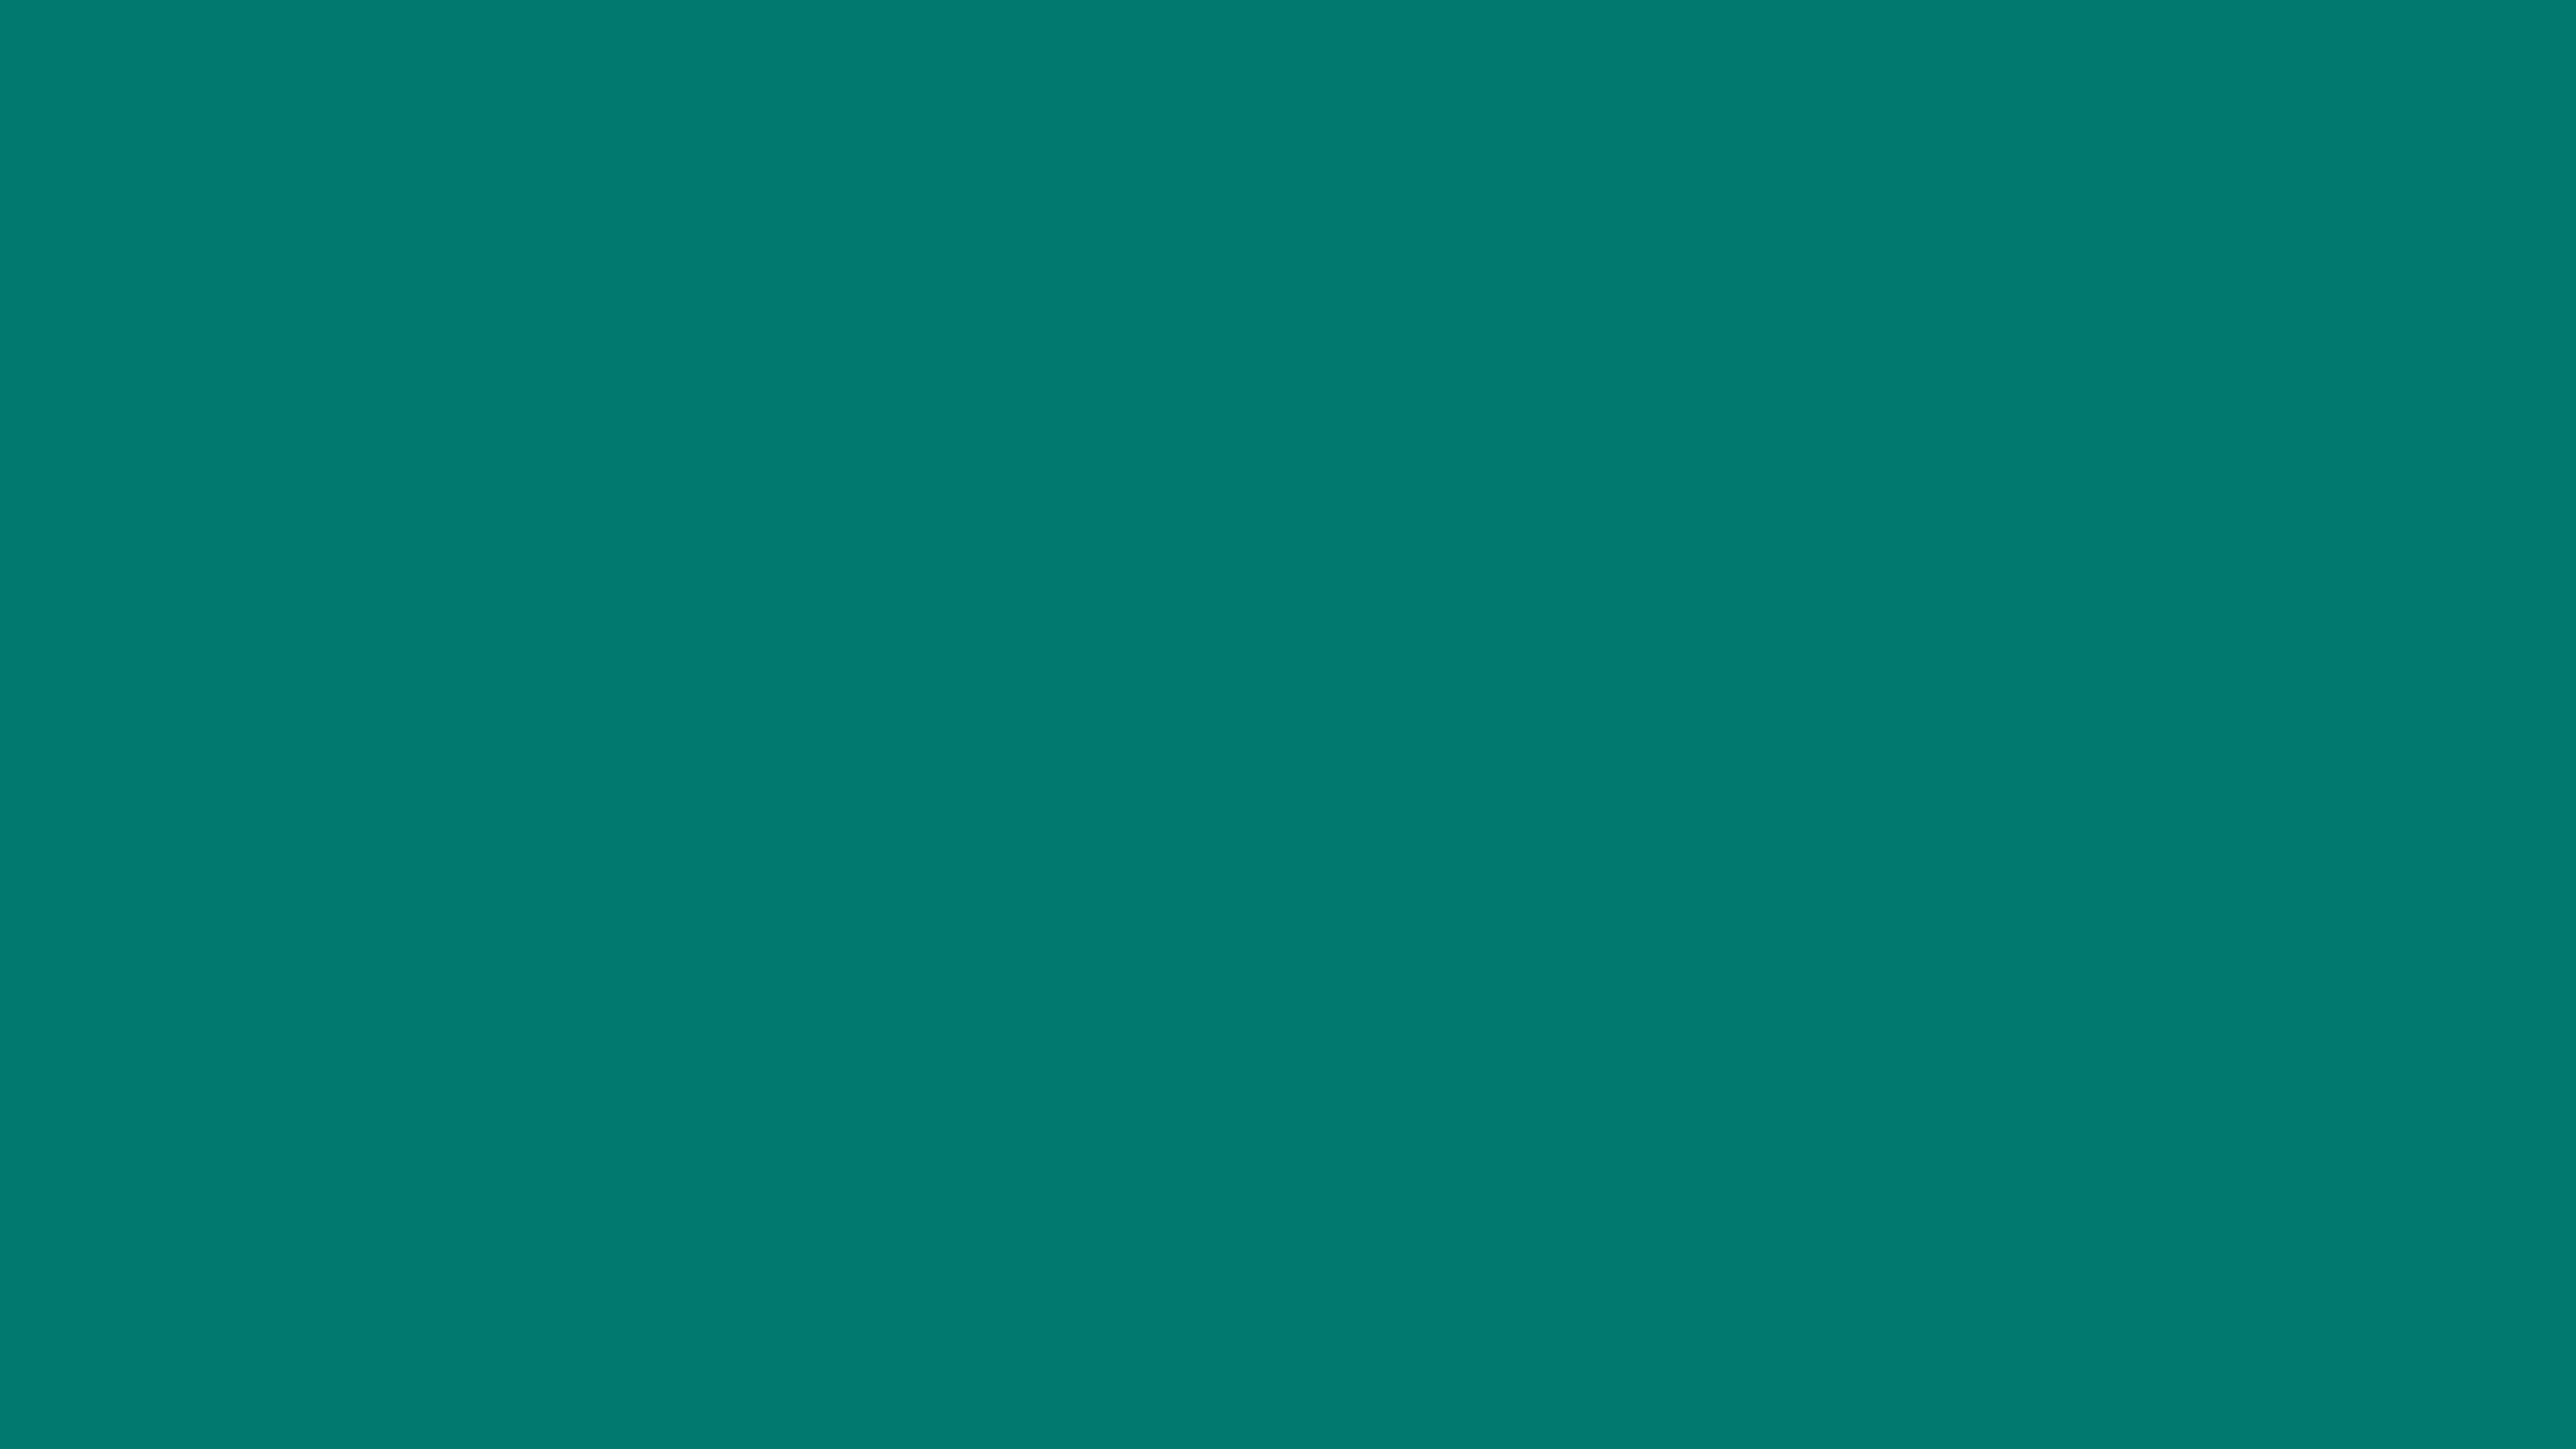 5120x2880 Pine Green Solid Color Background